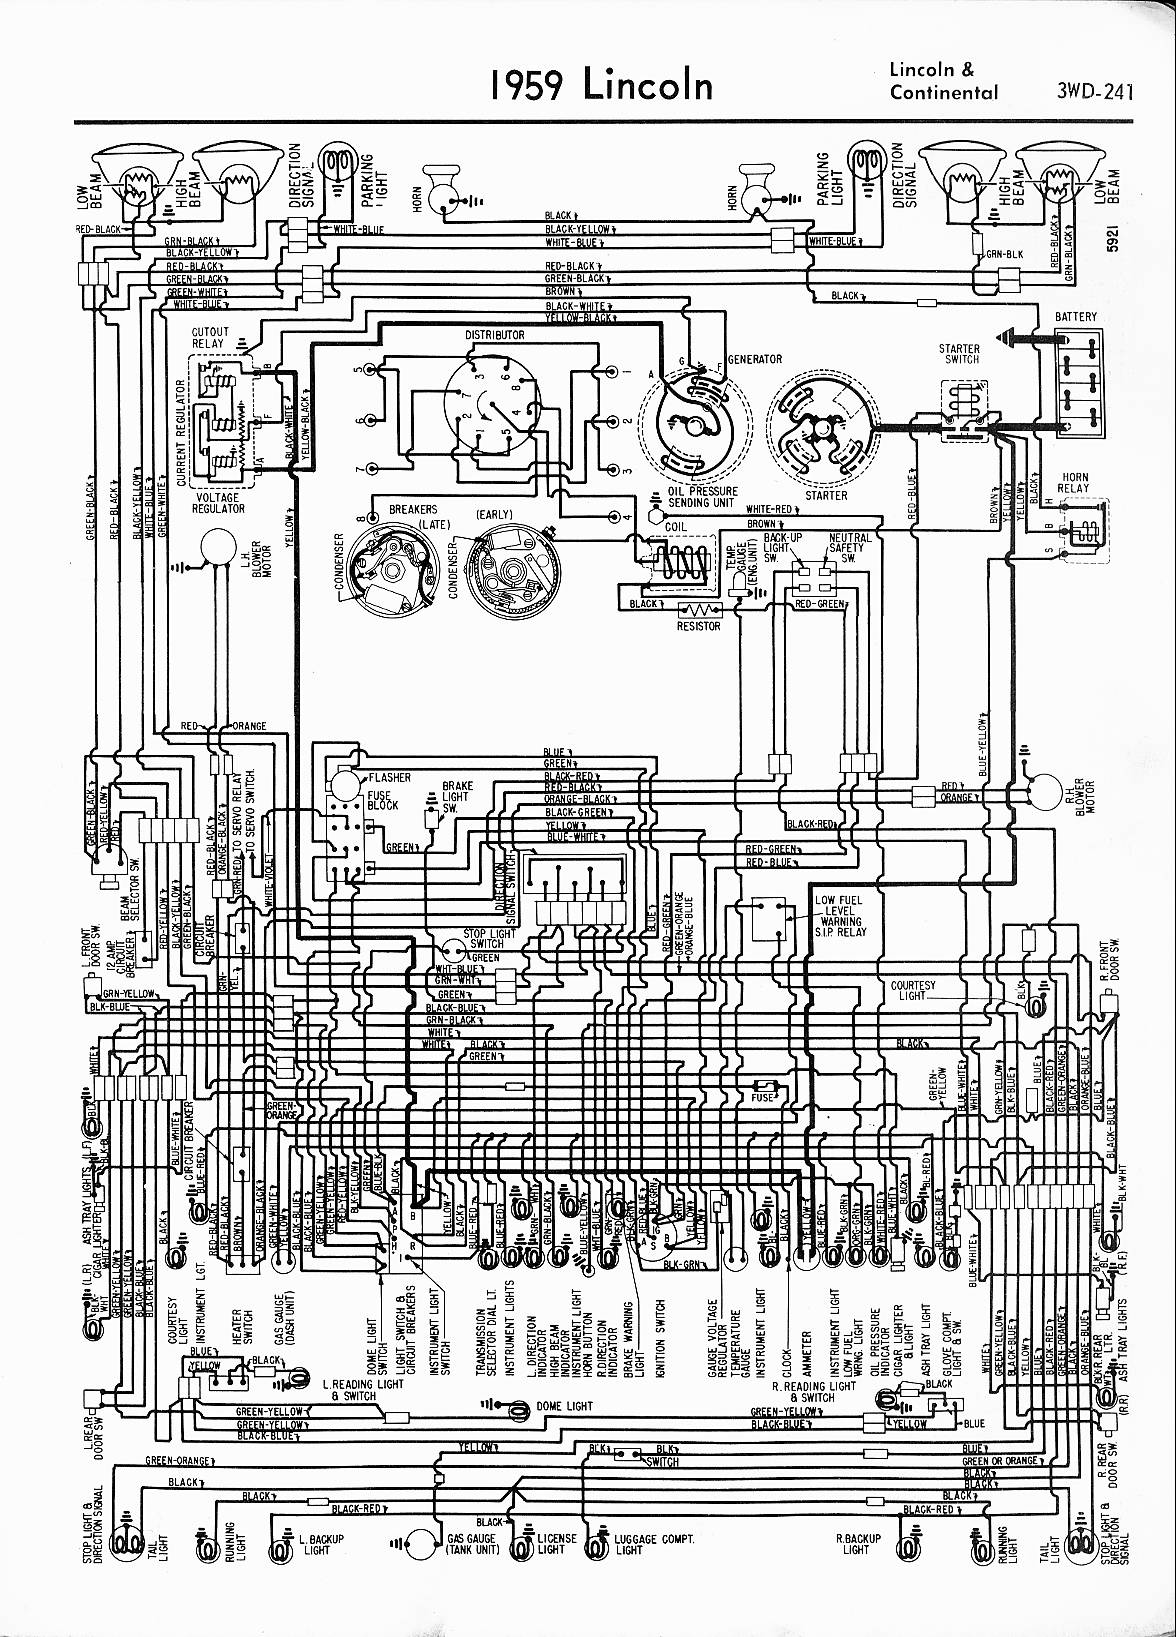 MWireLin_Lin57_z3wd 241z_004 lincoln wiring diagrams 1957 1965 1956 Bel Air Wiring Diagram at soozxer.org